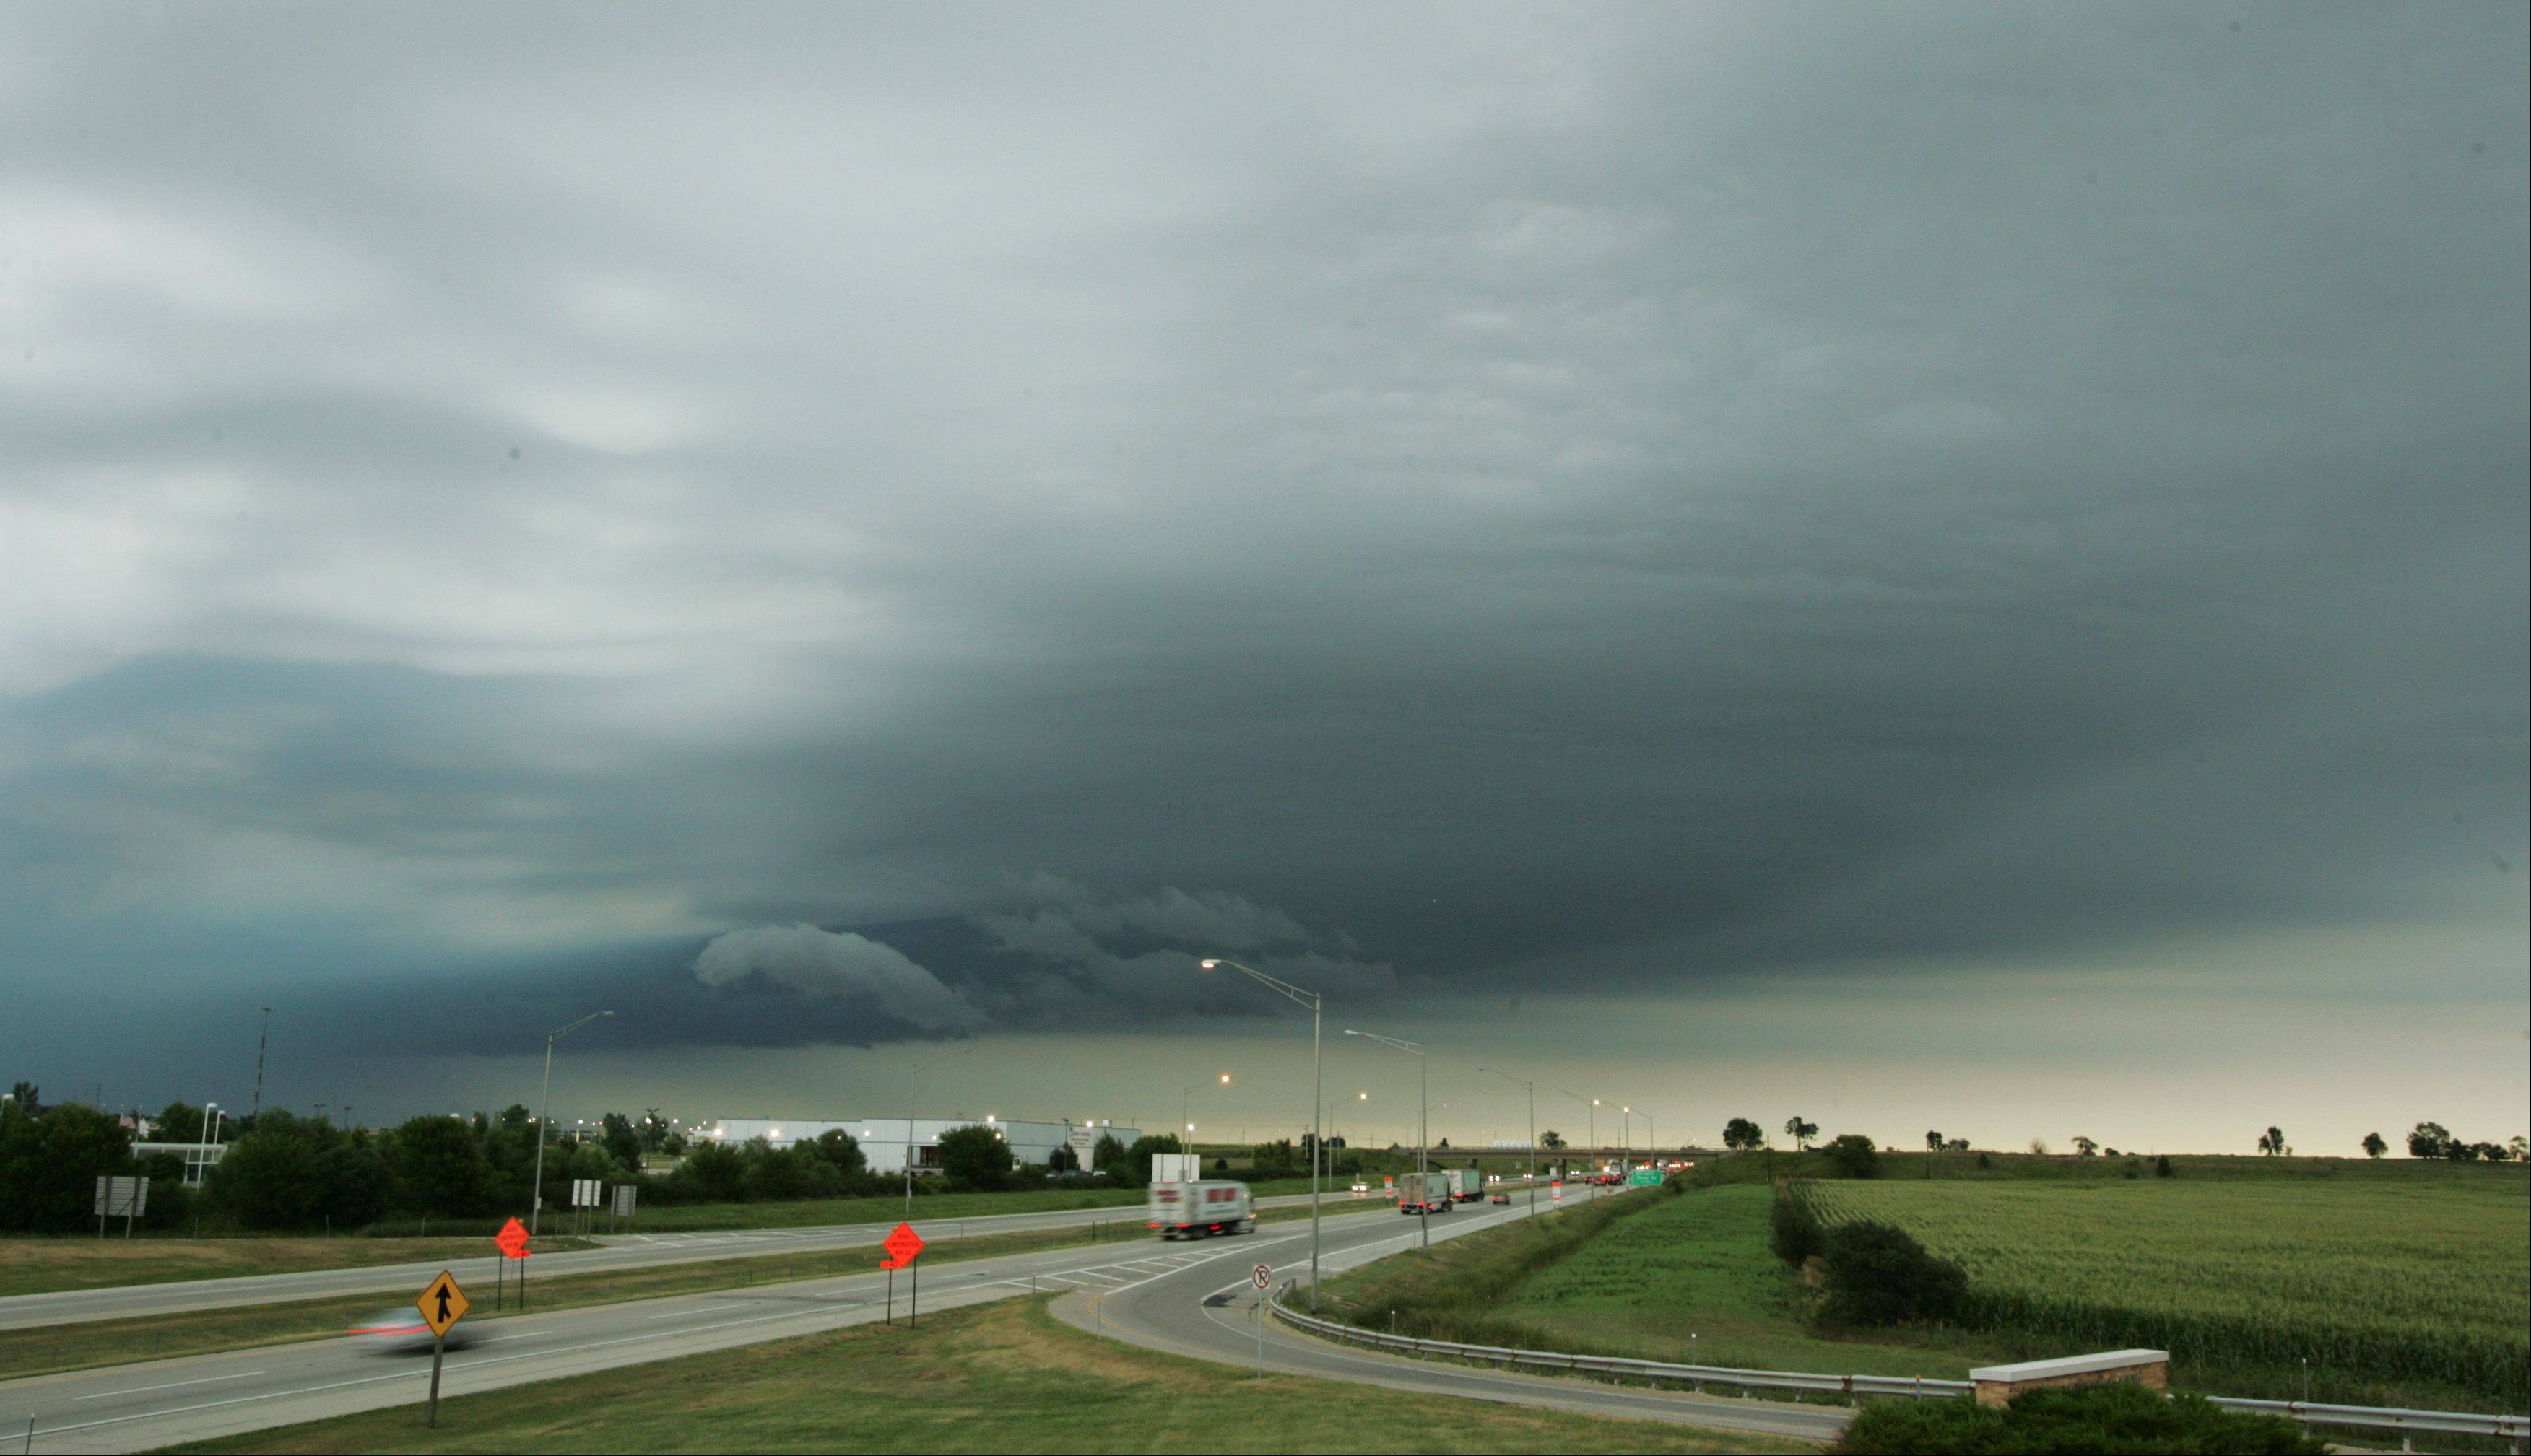 A thunderstorm rolls across Boone County Wednesday morning after passing through the Rockford area. The storm was tracking toward McHenry County and northern Lake County producing heavy rains and lightning, but lacking the high winds that have wreaked havoc during previous storms this summer.